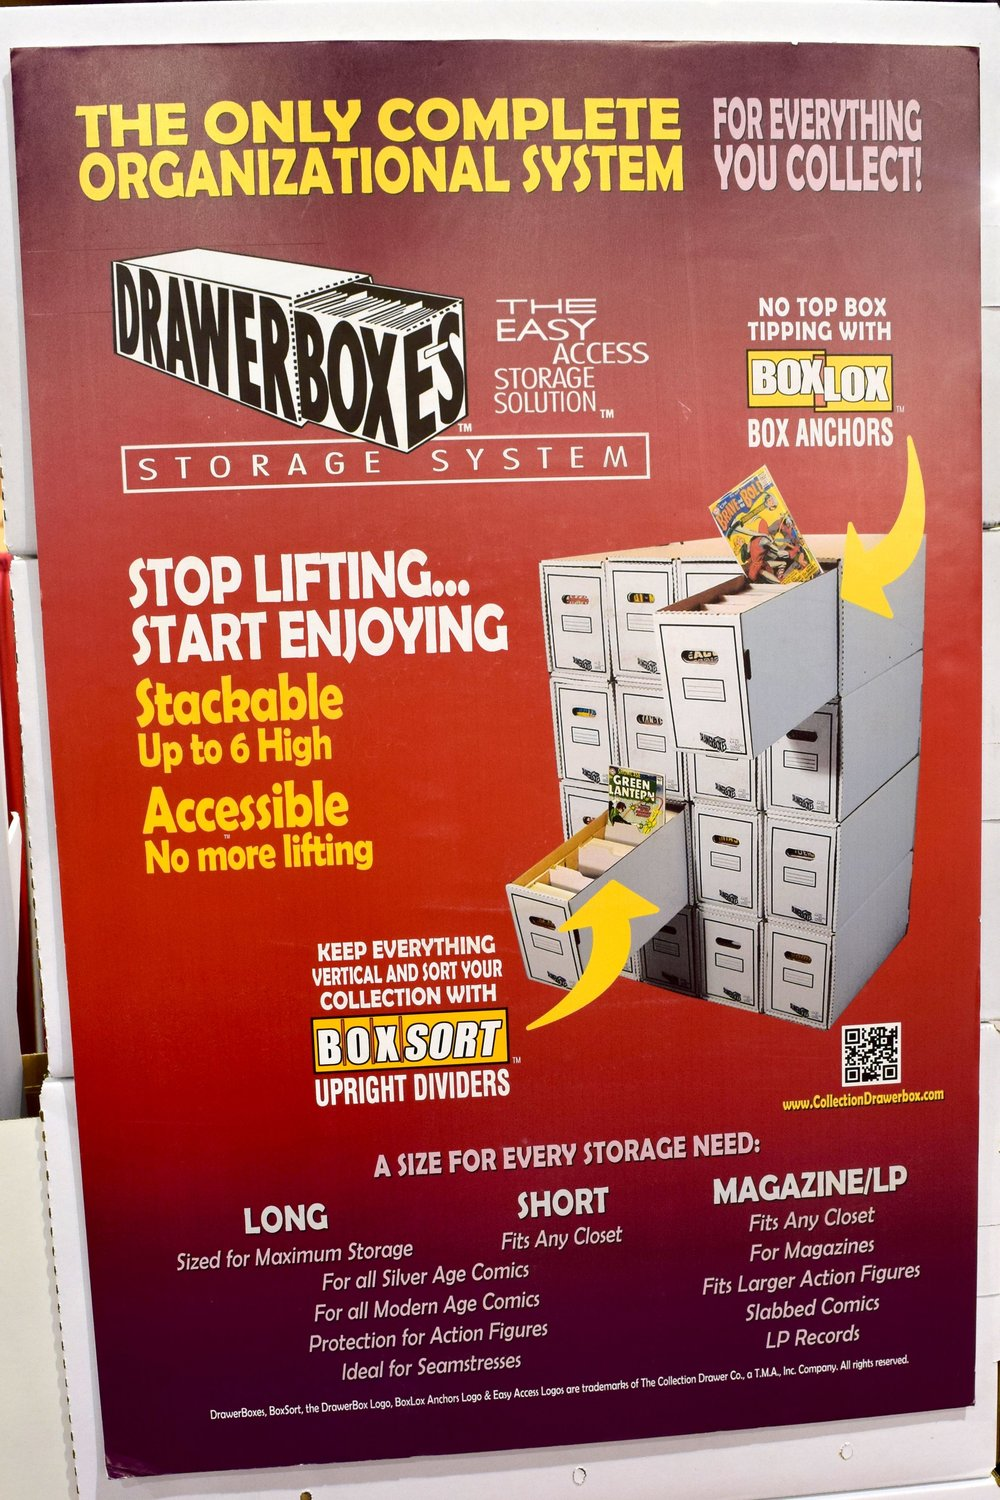 A DrawerBox Storage System poster at Phoenix Comic Con 2017.